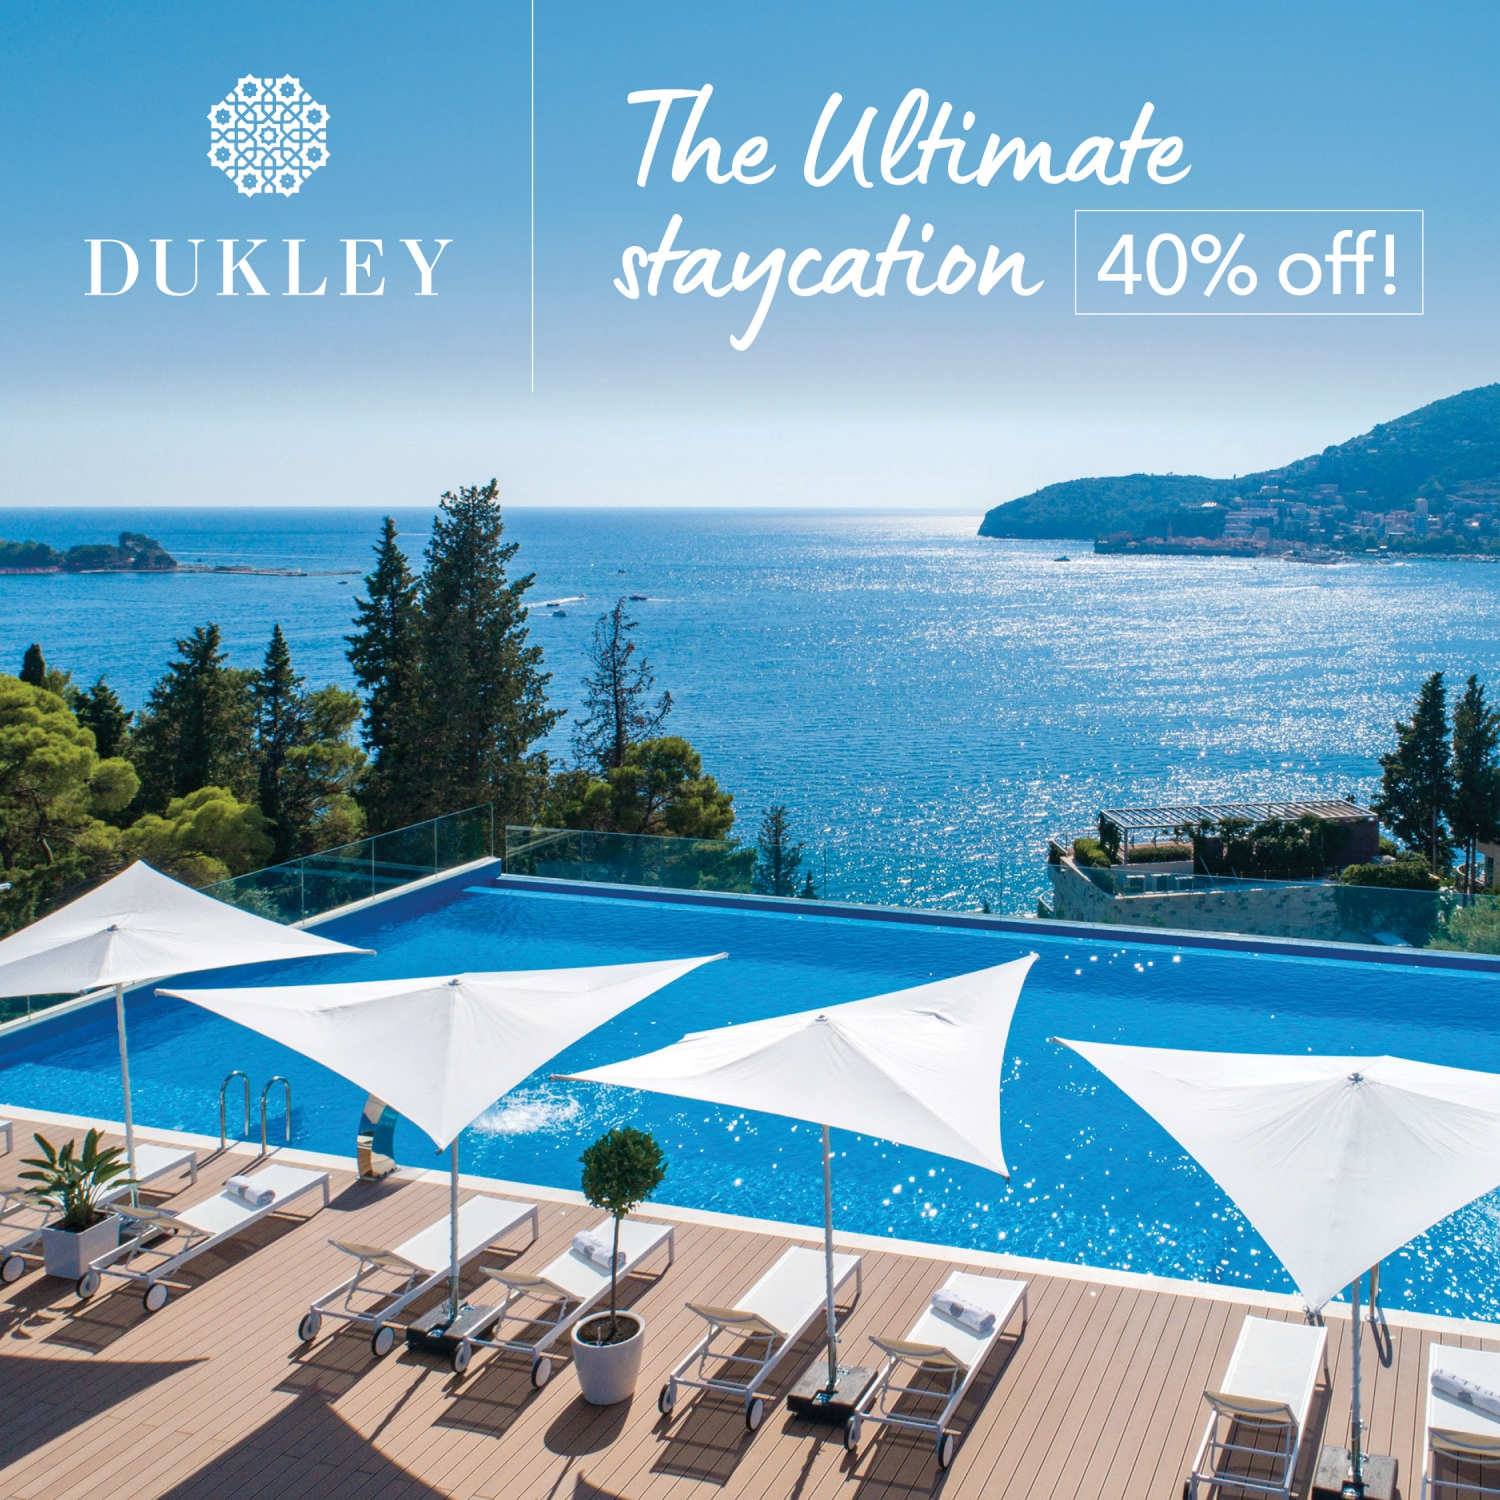 The Ultimate Staycation by Dukley Hotel & Resort